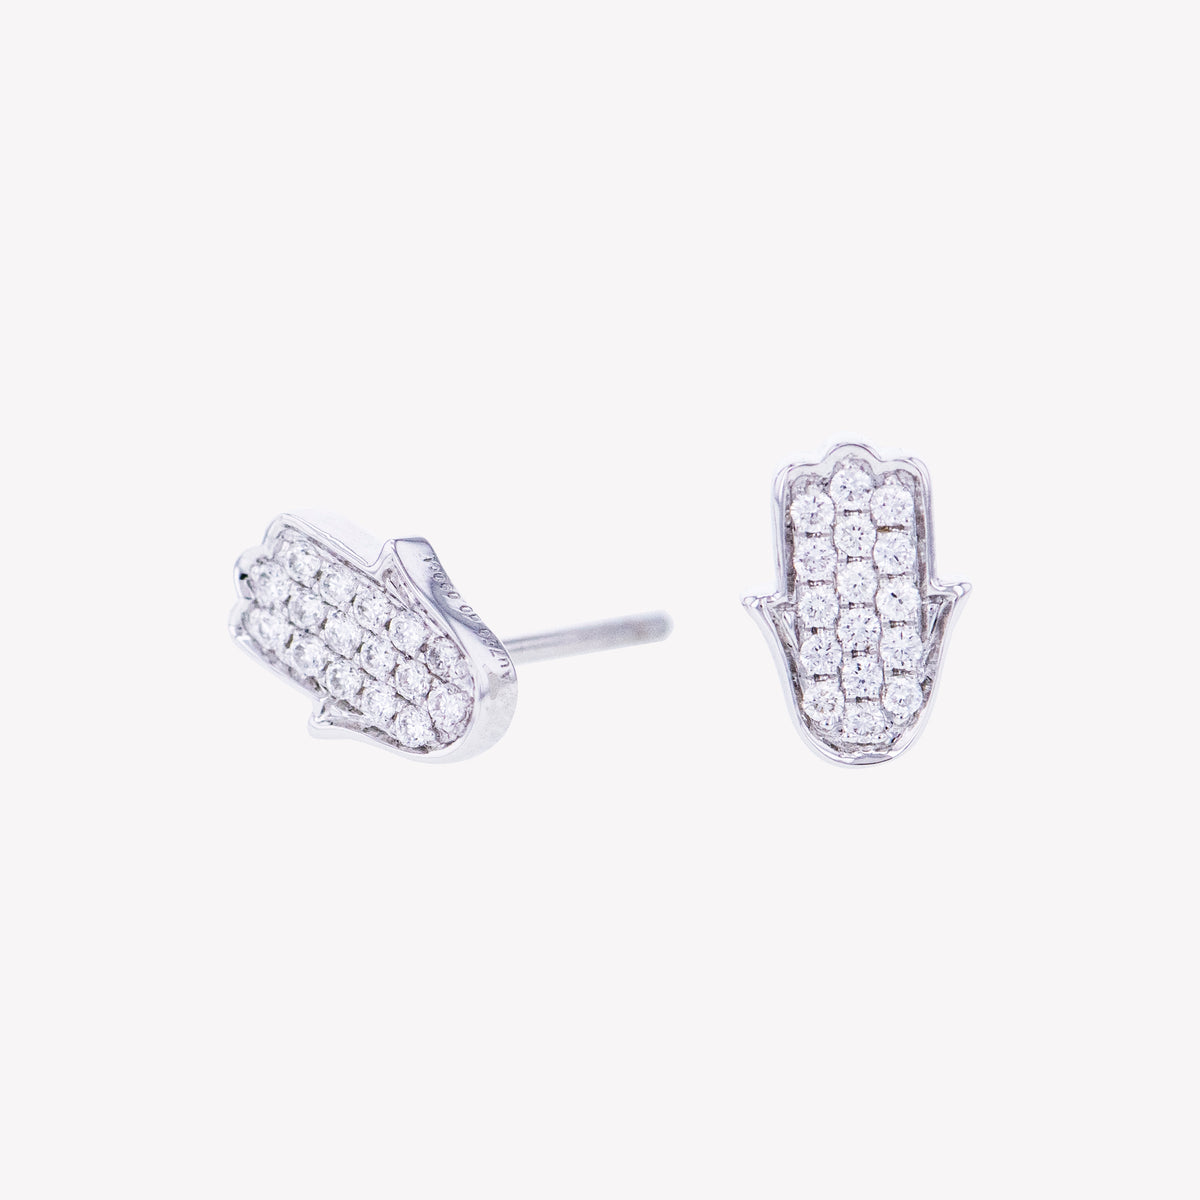 Hamsa Earrings in White Gold